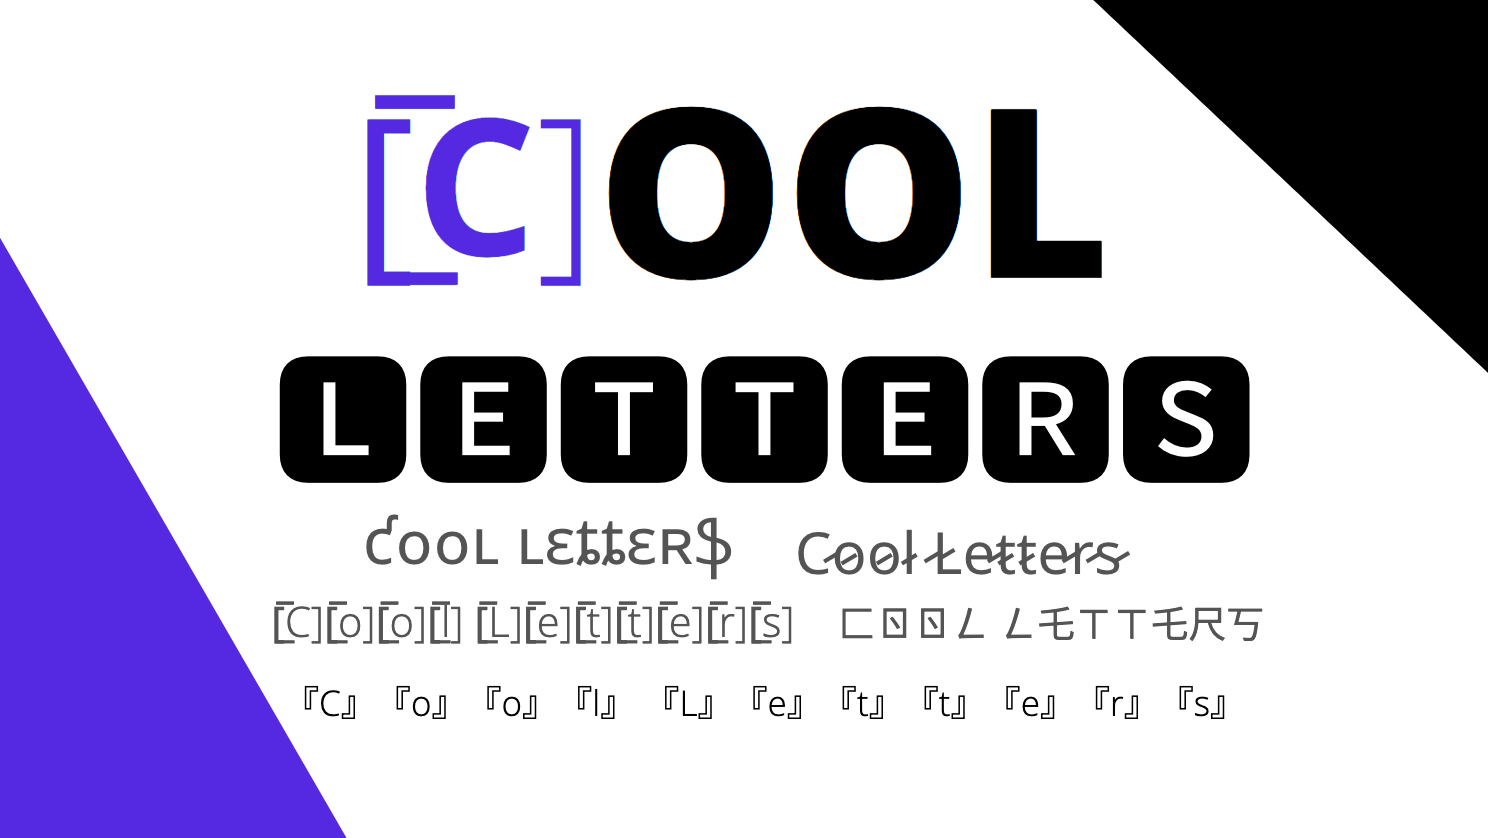 Cool Images Copy And Paste